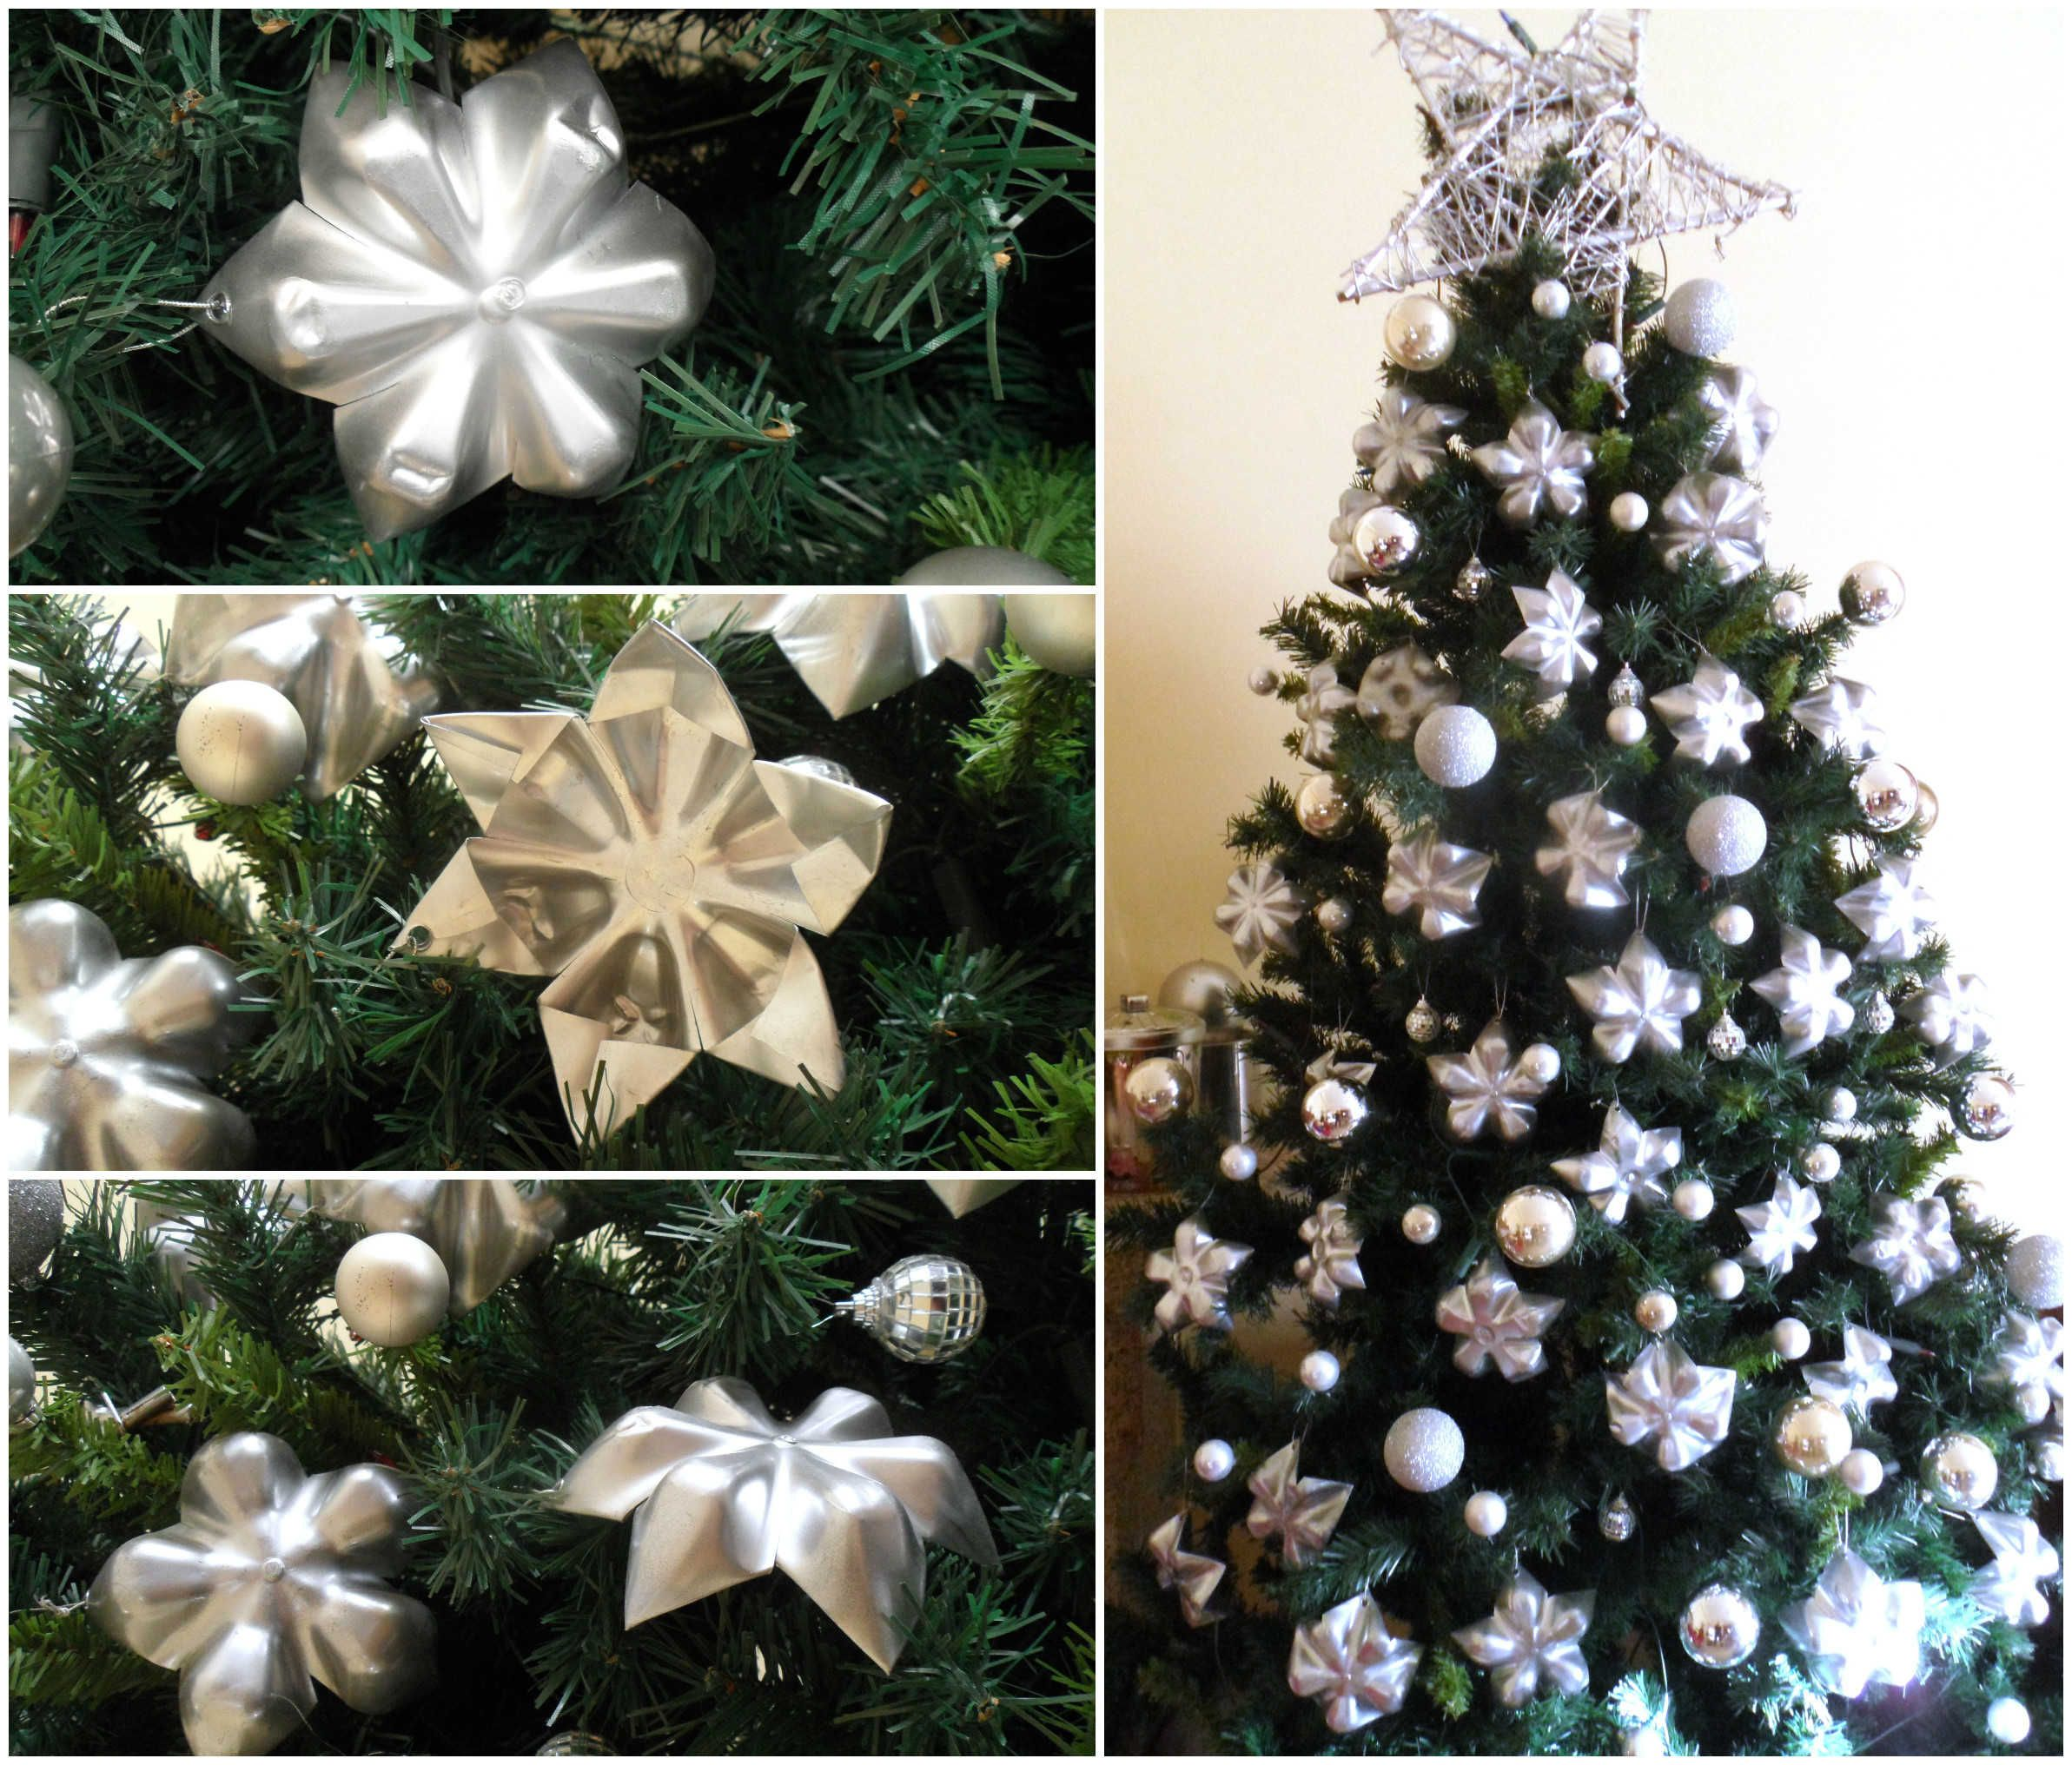 Christmas Decorations Made Out Of Plastic Bottles Upcycled Plastic Bottle Bottoms Into Stars For Christmas Tree